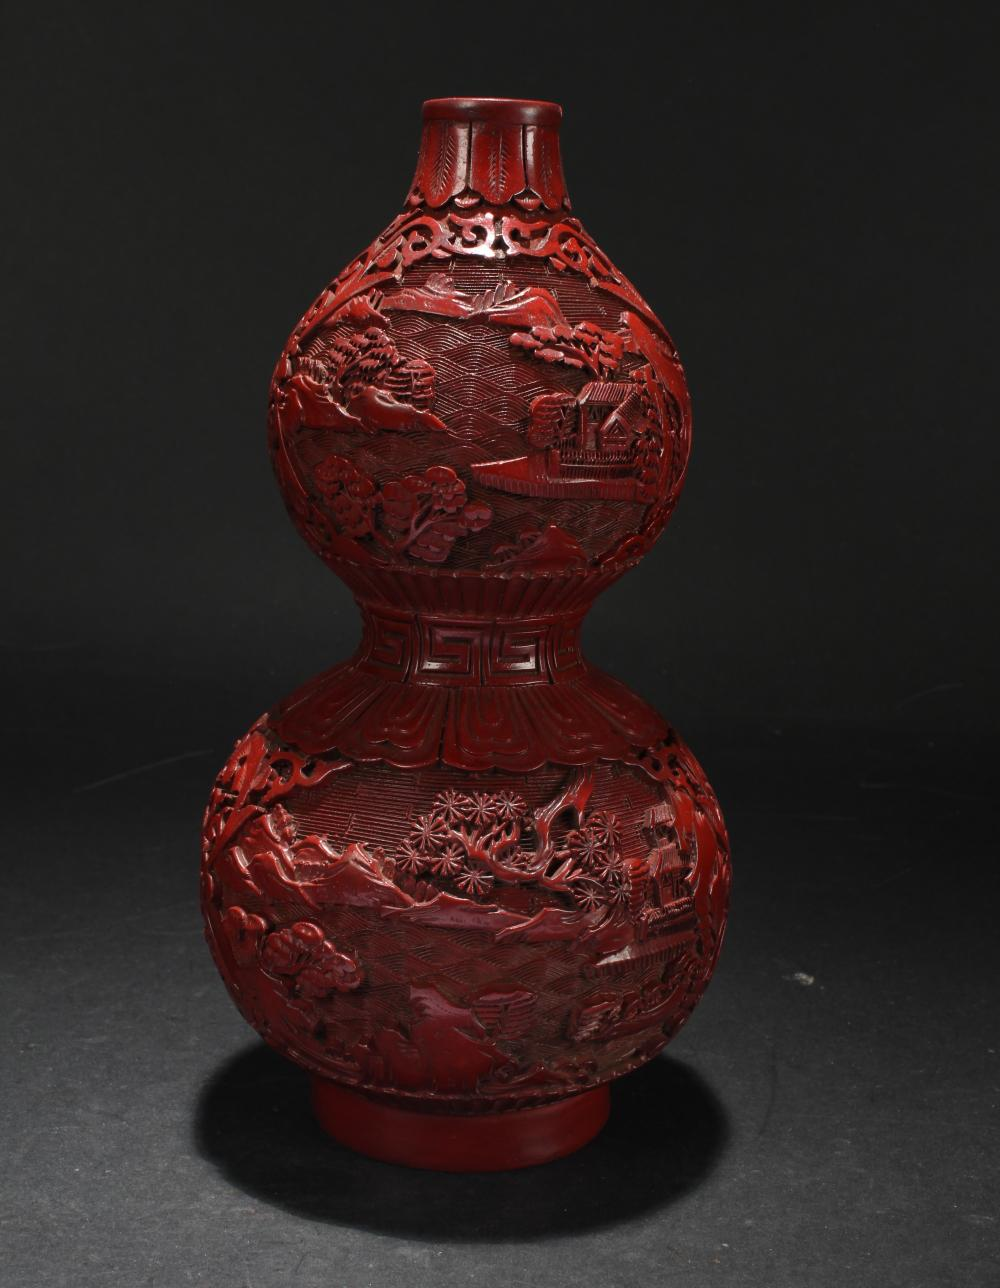 A Chinese Calabash-shape Estate Fortune Lacquer Vase